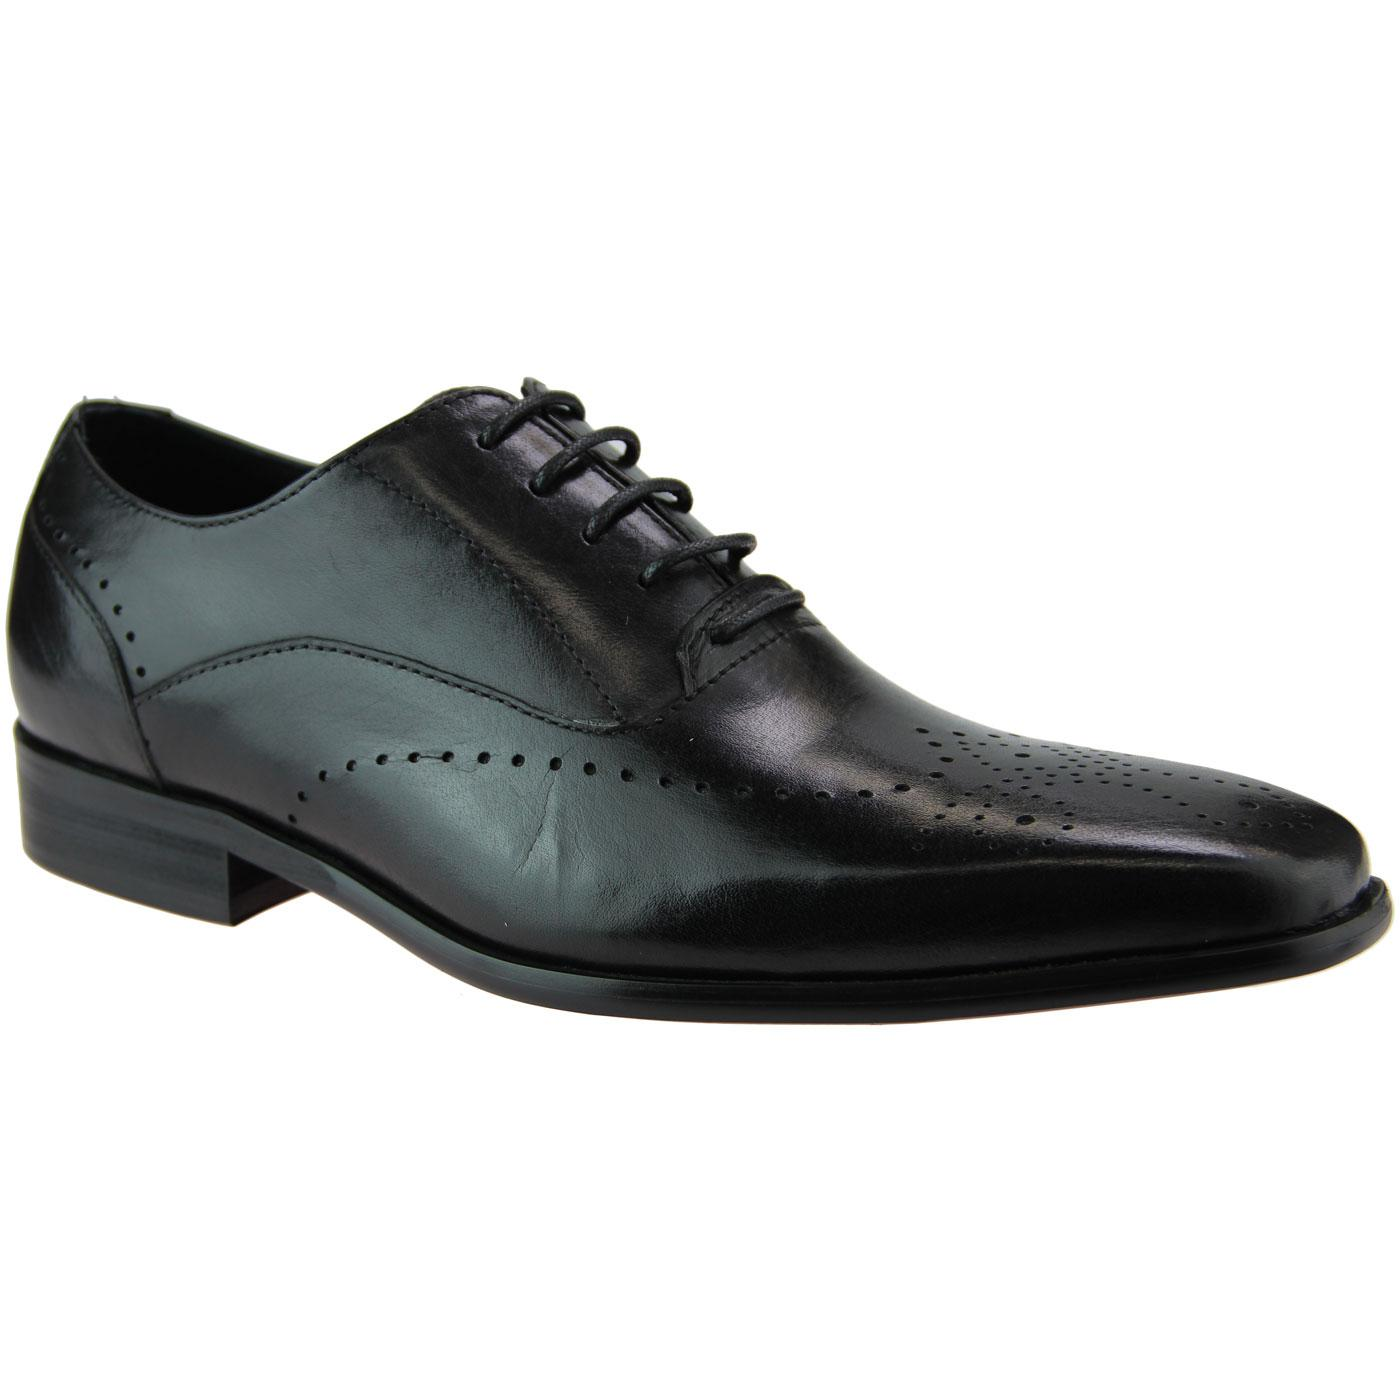 Coulter PAOLO VANDINI Oxford Brogue Shoes (Black)